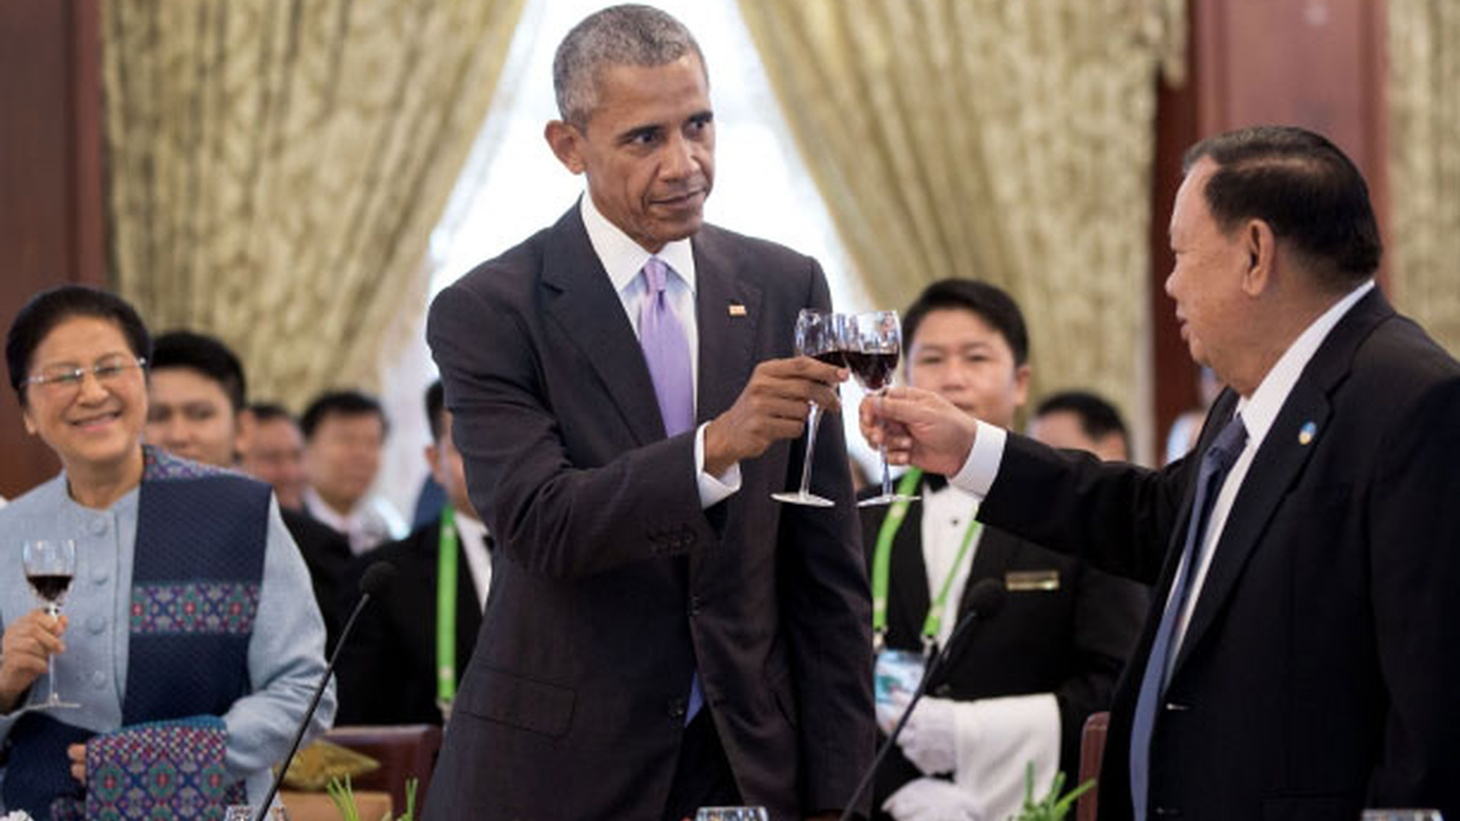 President Obama's in Asia, coping with climate change, and China and America's past military excesses — not to mention his own legacy. Experts disagree about successes… and failures. We hear about the President's successes and failures.